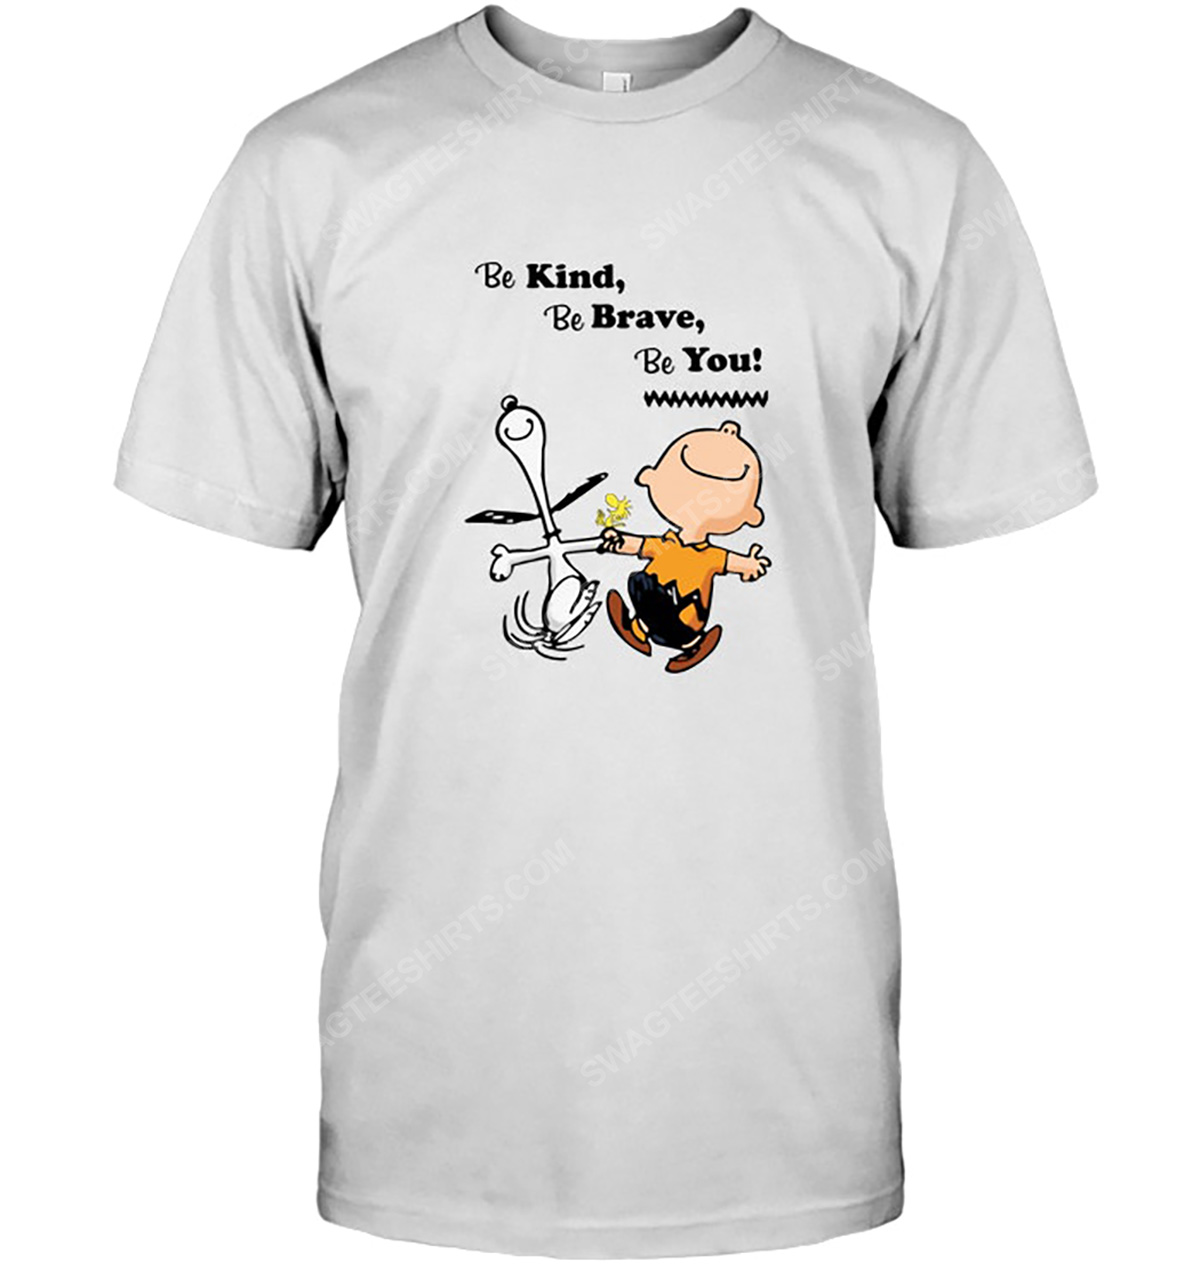 Charlie brown and snoopy be kind be brave be you tshirt 1